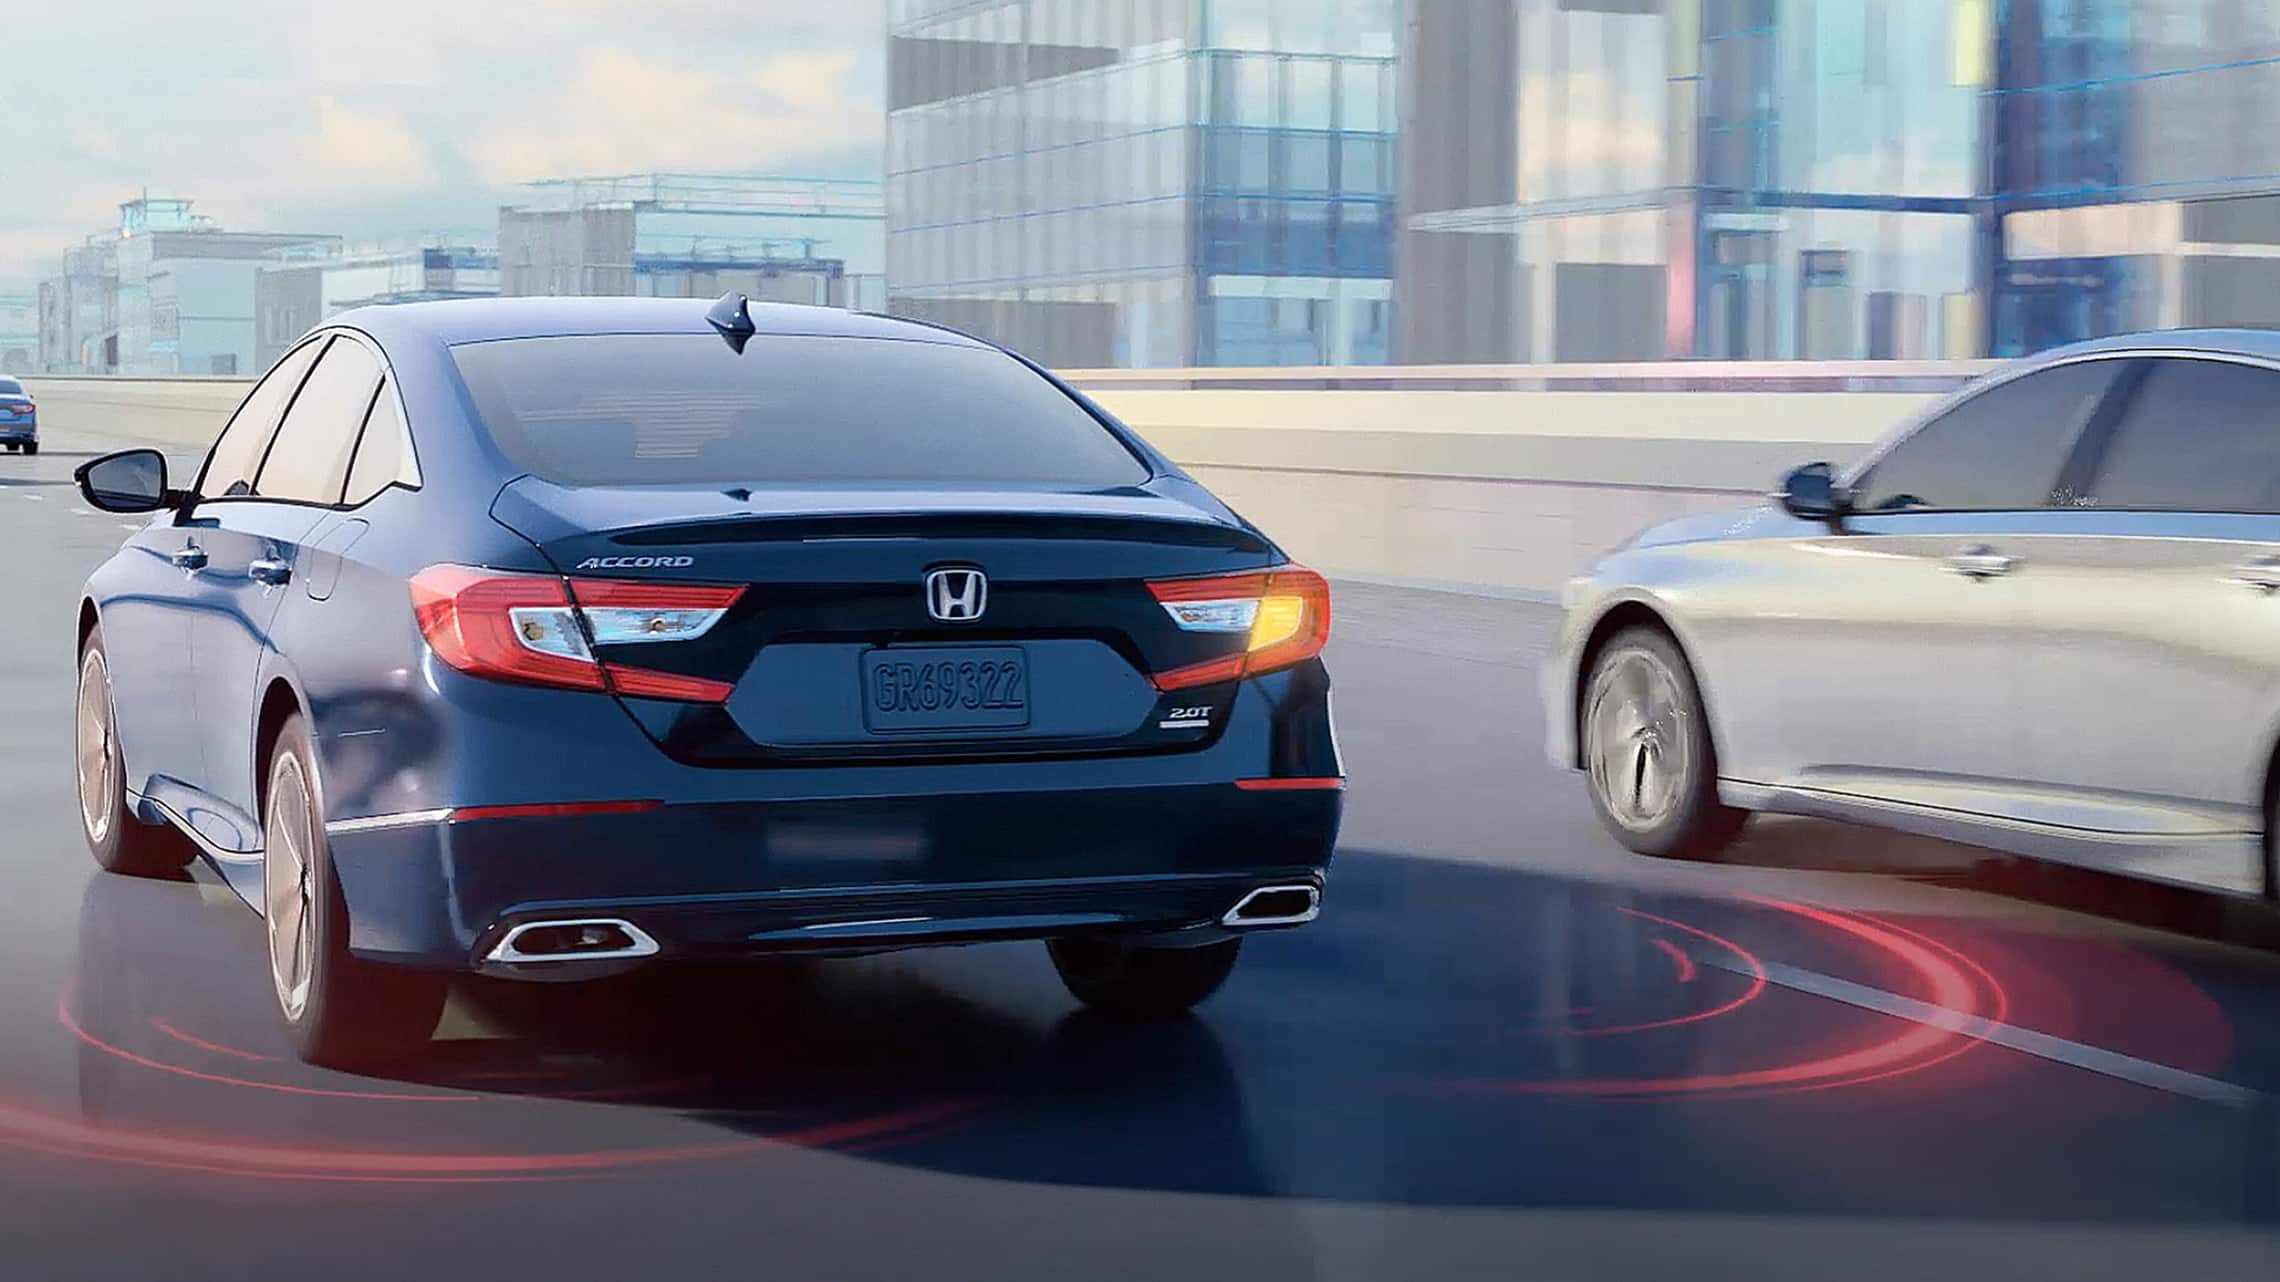 2021 Honda Accord demonstrating the blind spot information system feature.